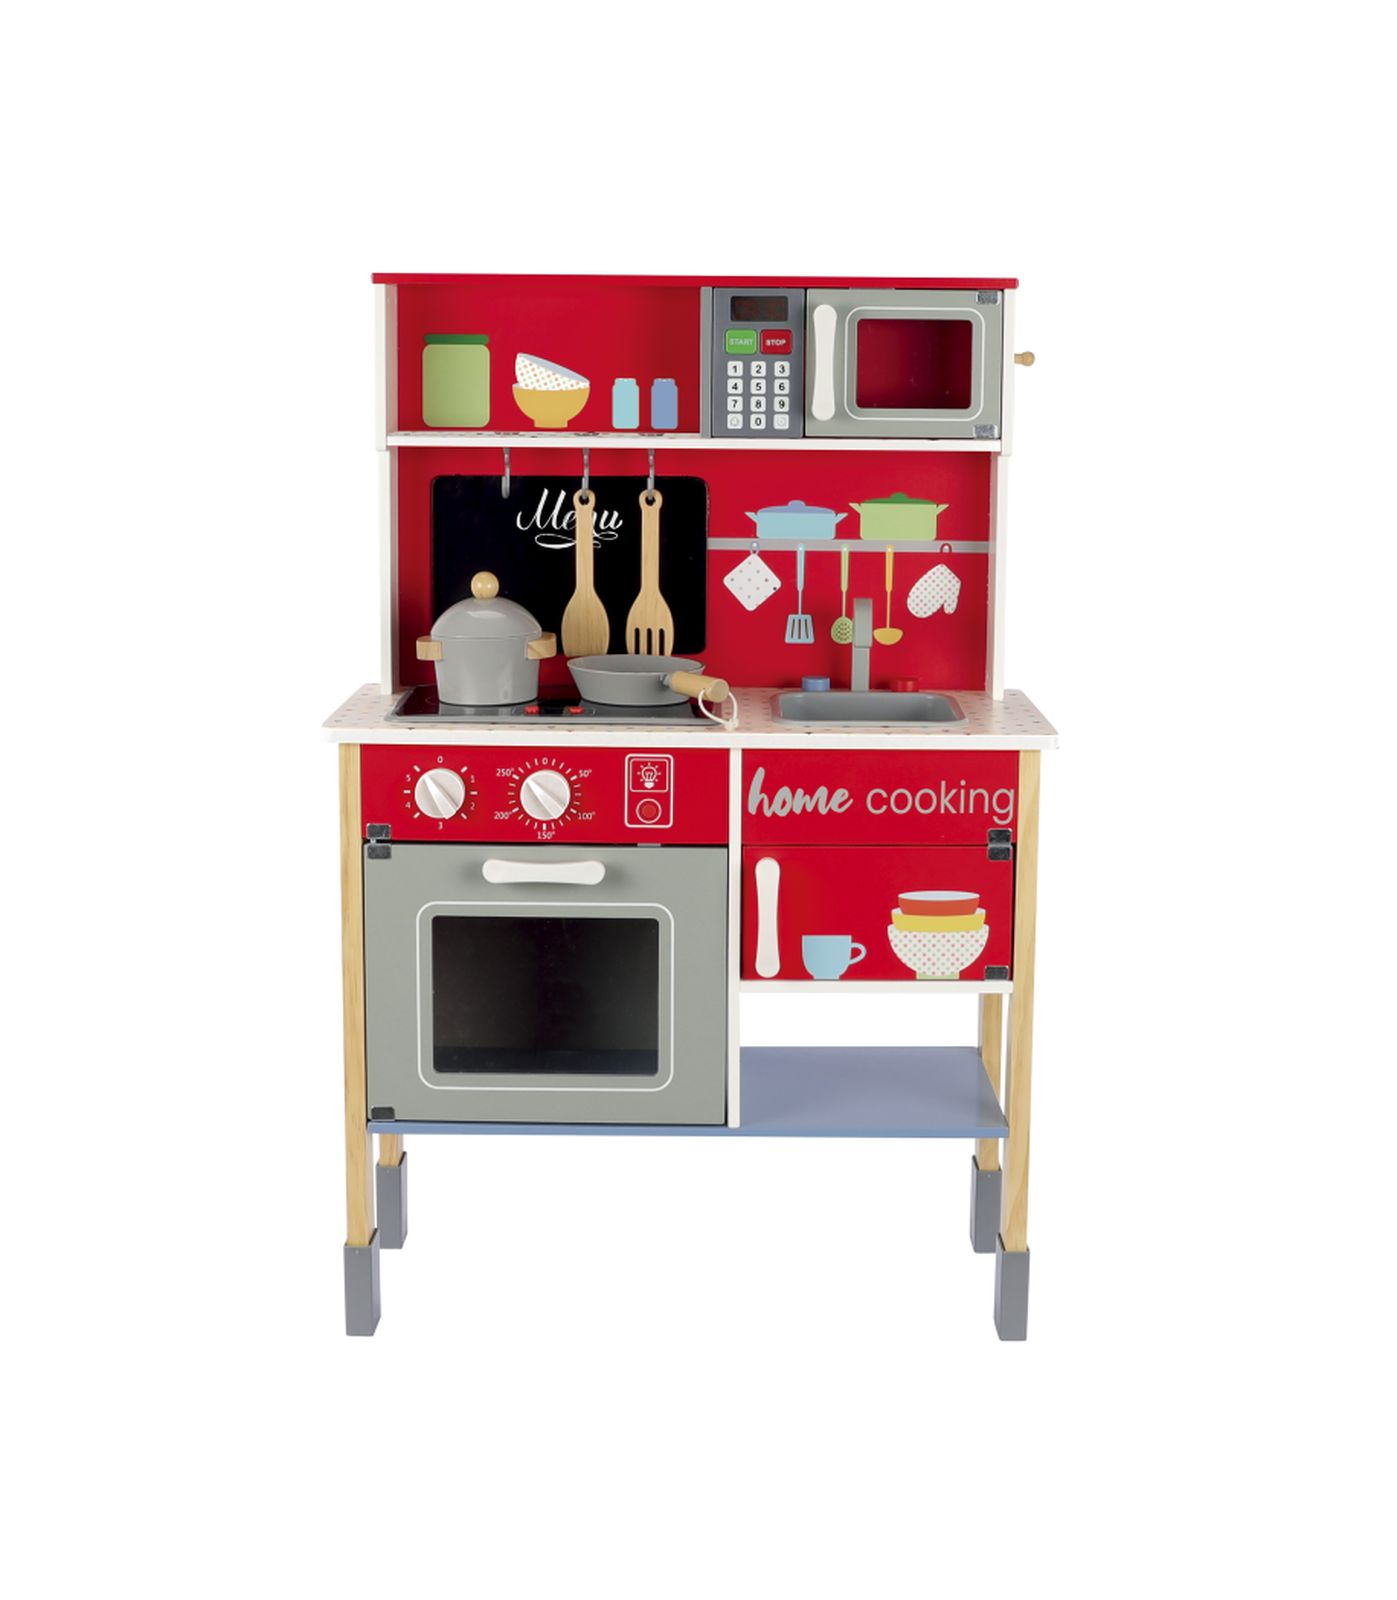 Cucina Home Cooking Toys Center